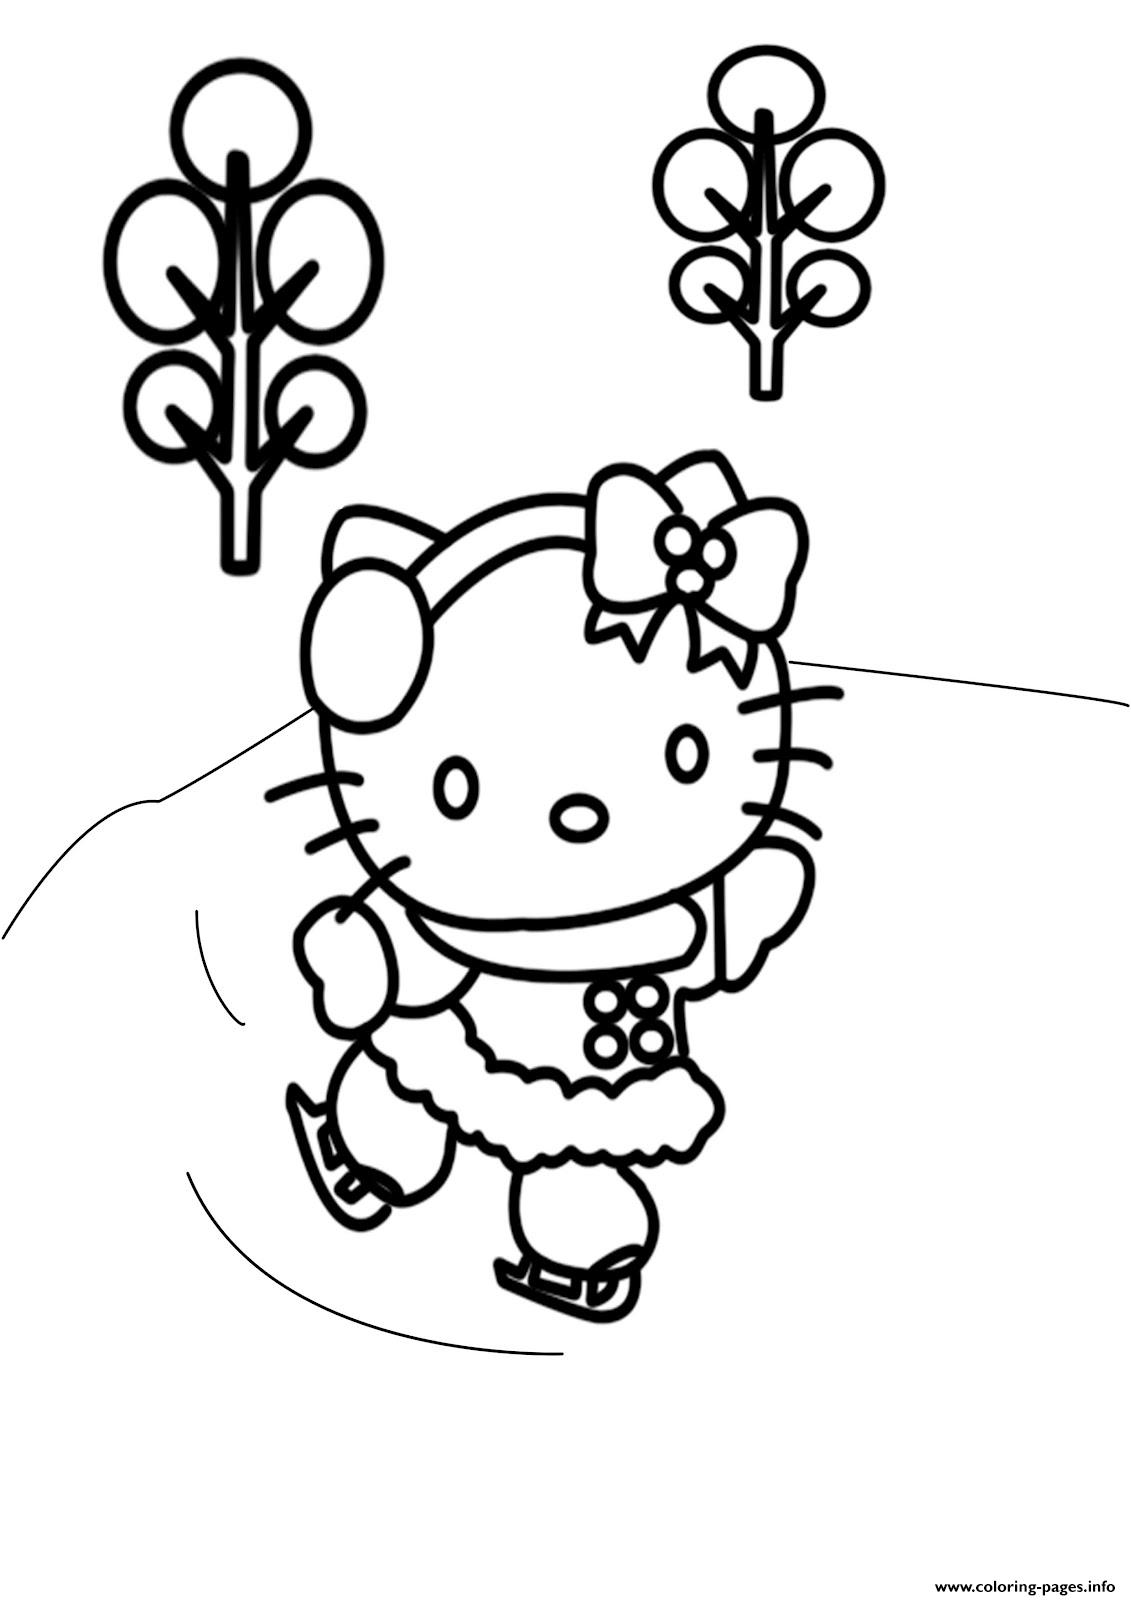 Free Winter S Hello Kitty Skatingb521 coloring pages